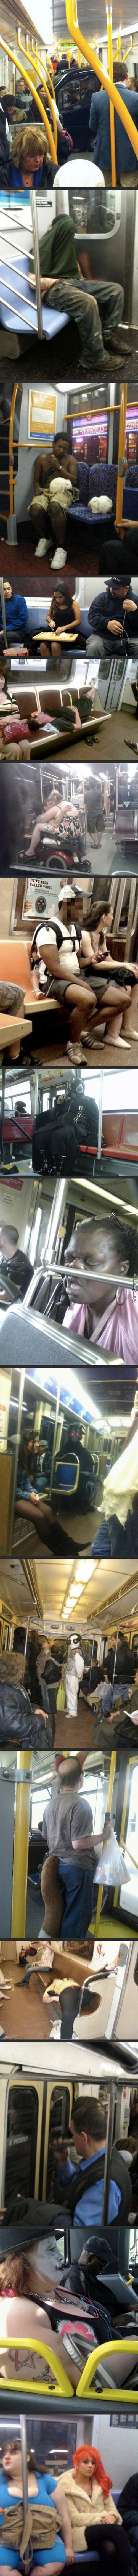 Compilation Of Crazy People On Subways.